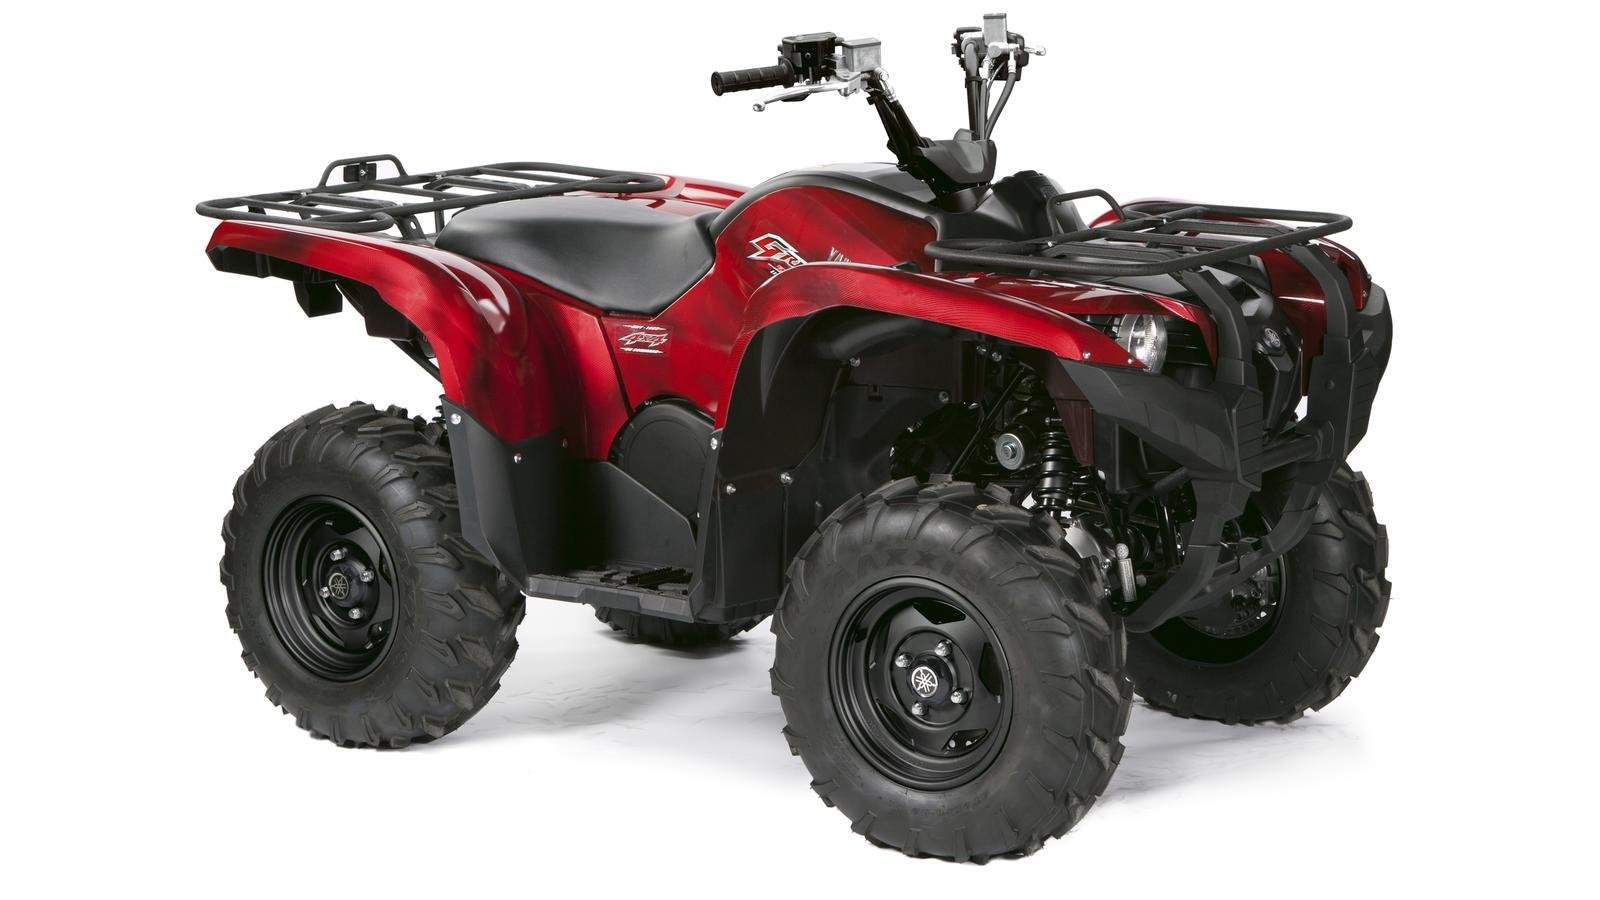 2013 yamaha grizzly 700 eps se review top speed for Yamaha grizzly 50